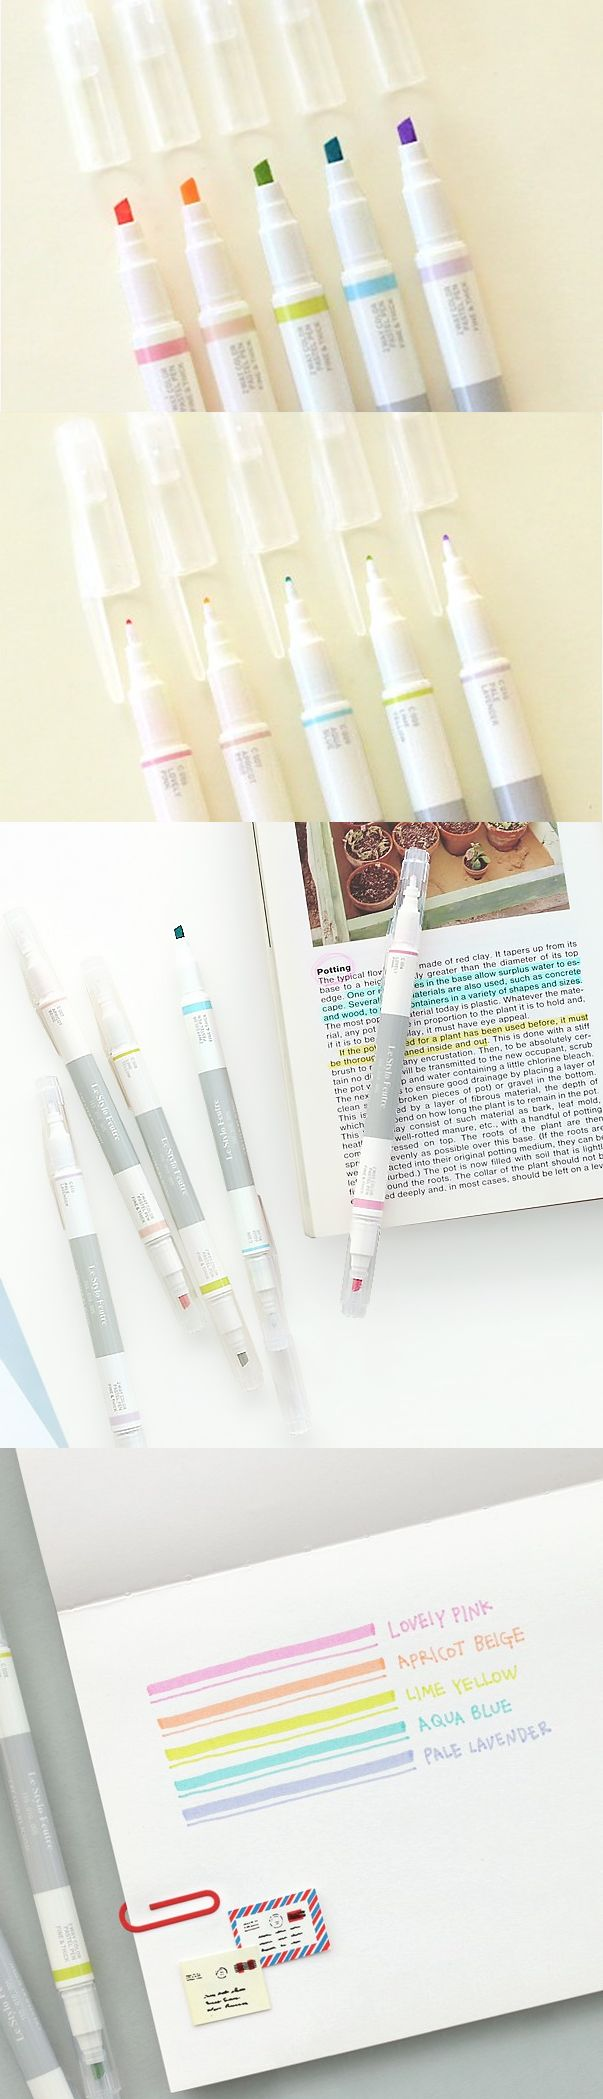 Whoa Check Out This Dual Sided Pen One Side Has A Fine Tip For Stabilo Boss Orange Set 10 Shrink Writing And The Other Thicker Highlighting Includes 5 Really